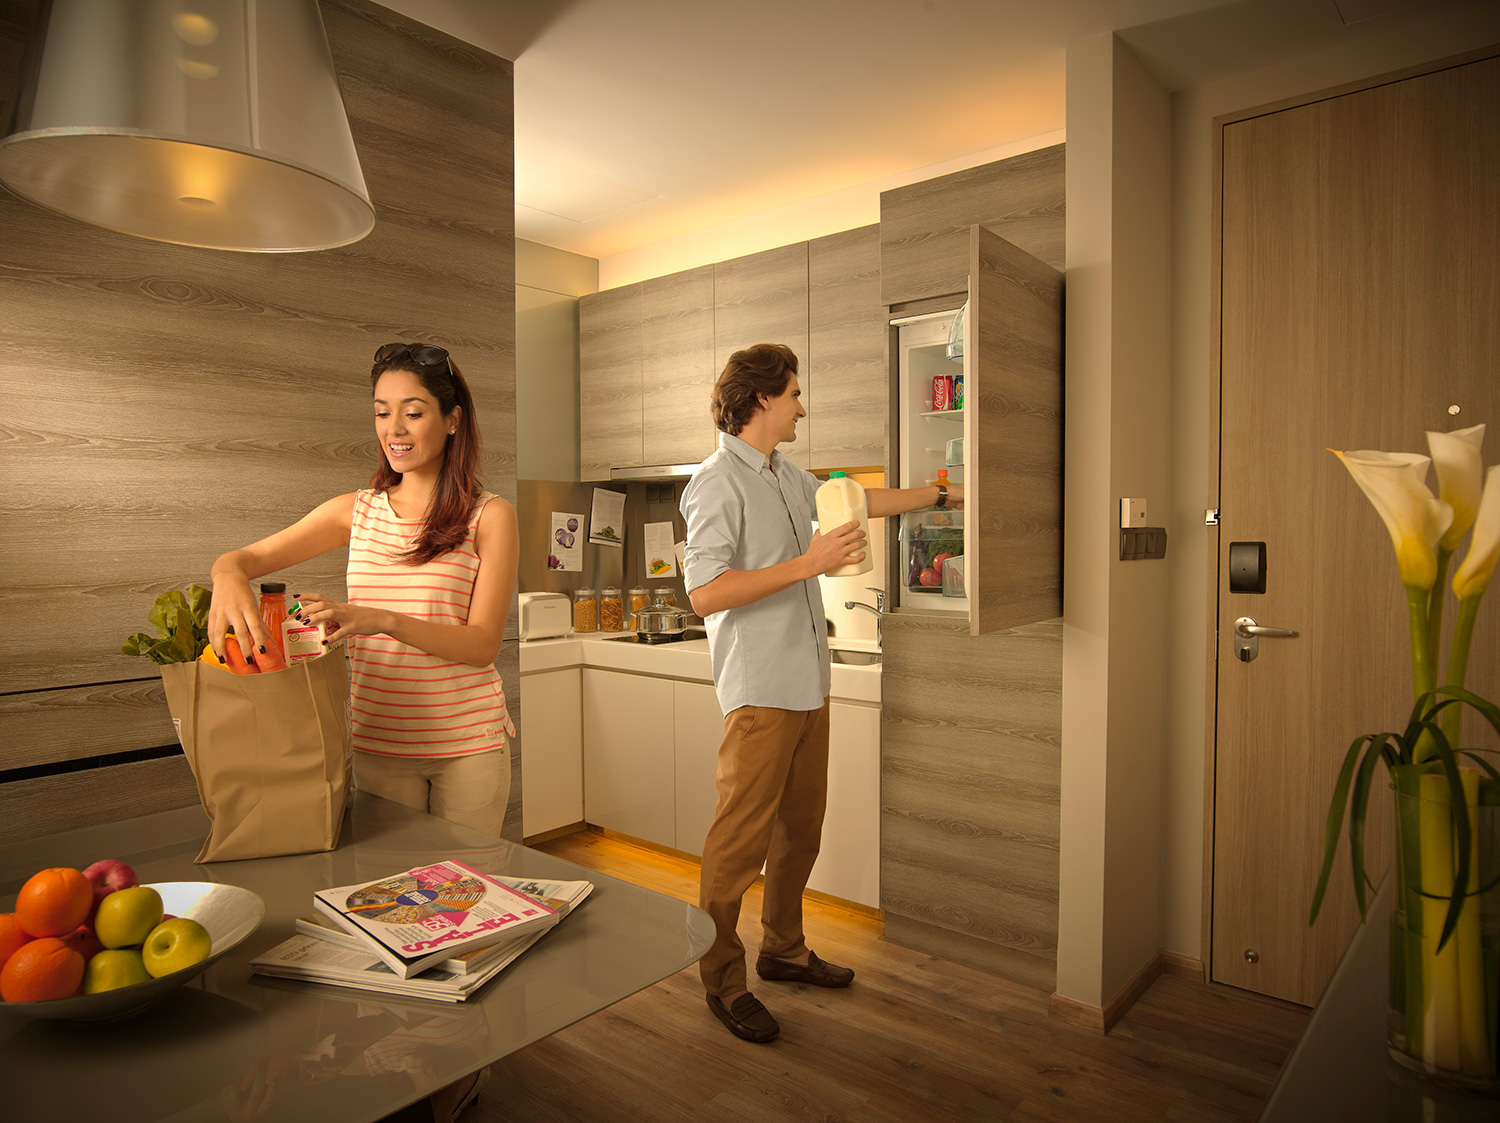 PPSSBR_fully-equipped-kitchenette